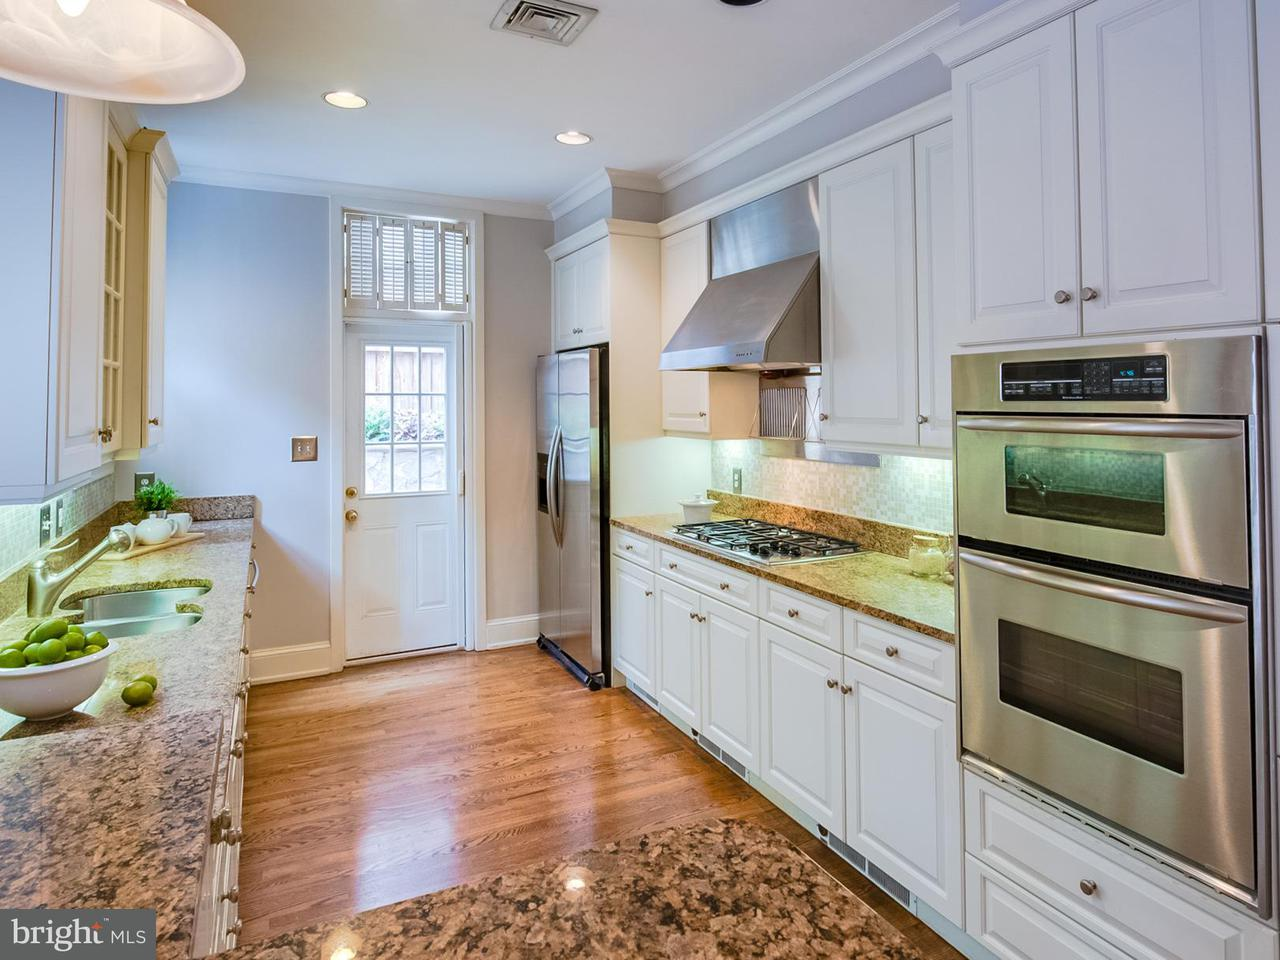 Additional photo for property listing at 2127 LEROY PL NW 2127 LEROY PL NW Washington, District Of Columbia 20008 United States